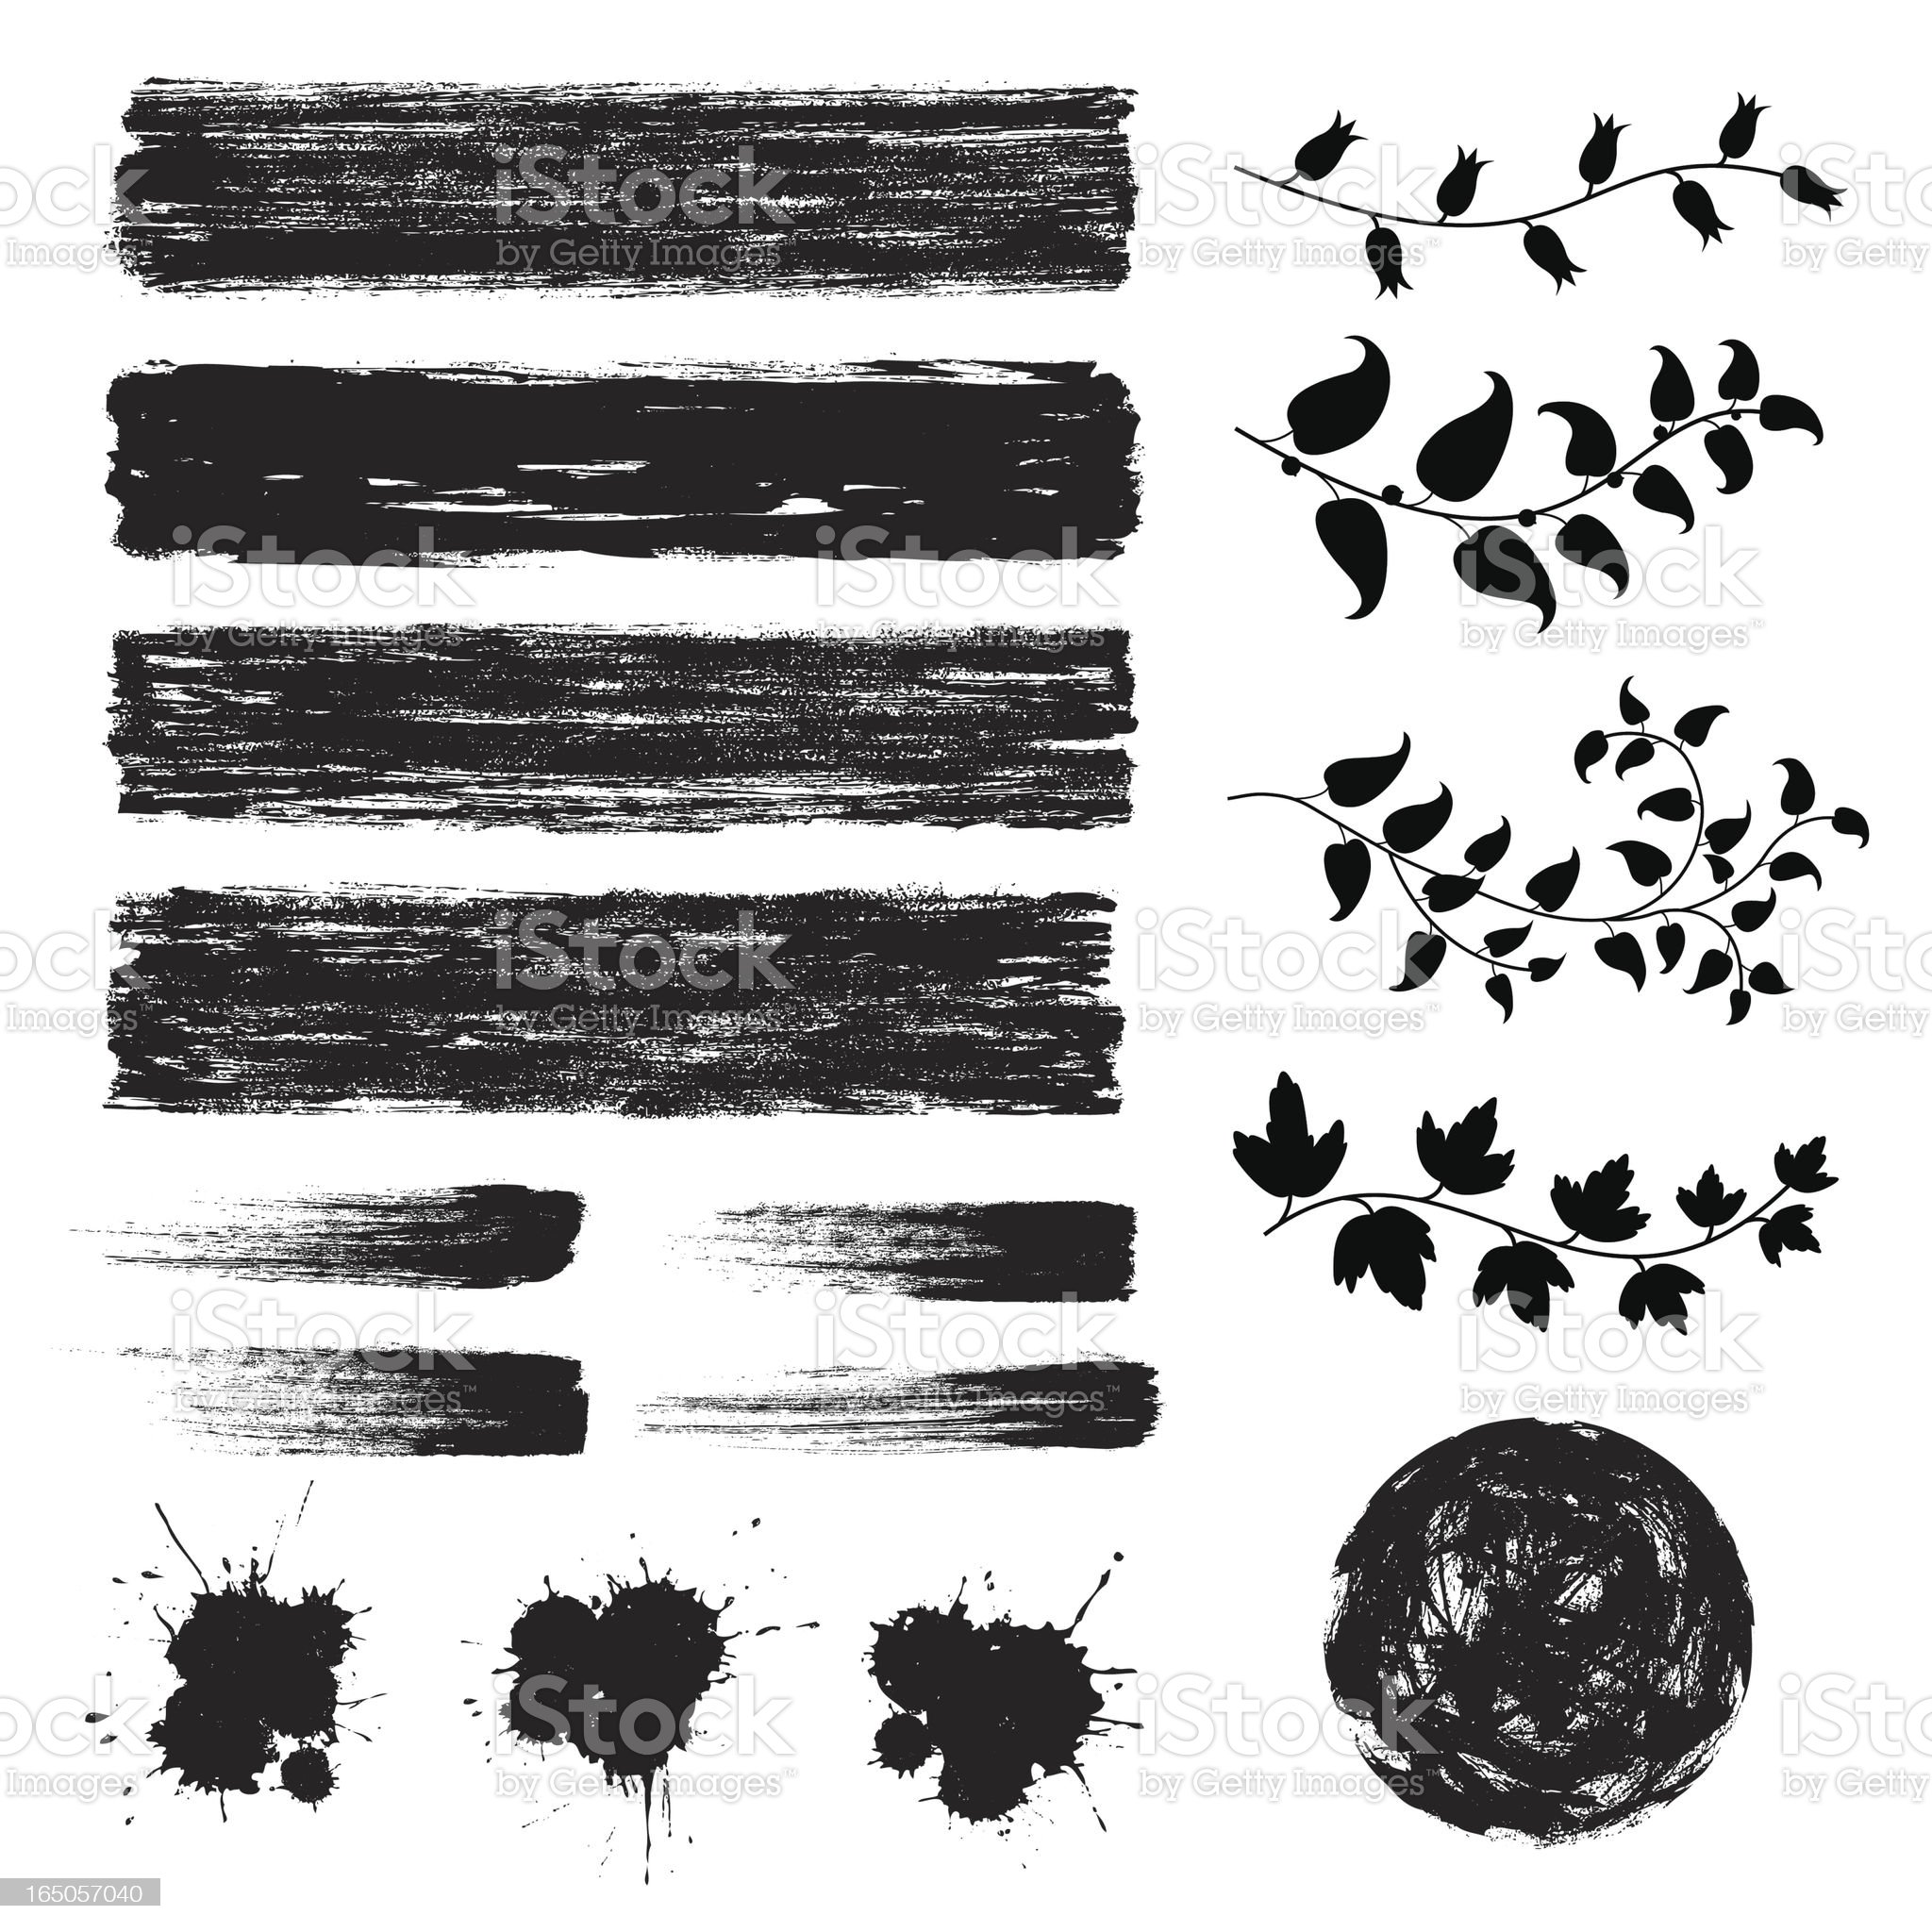 Set of black grunge design elements royalty-free stock vector art